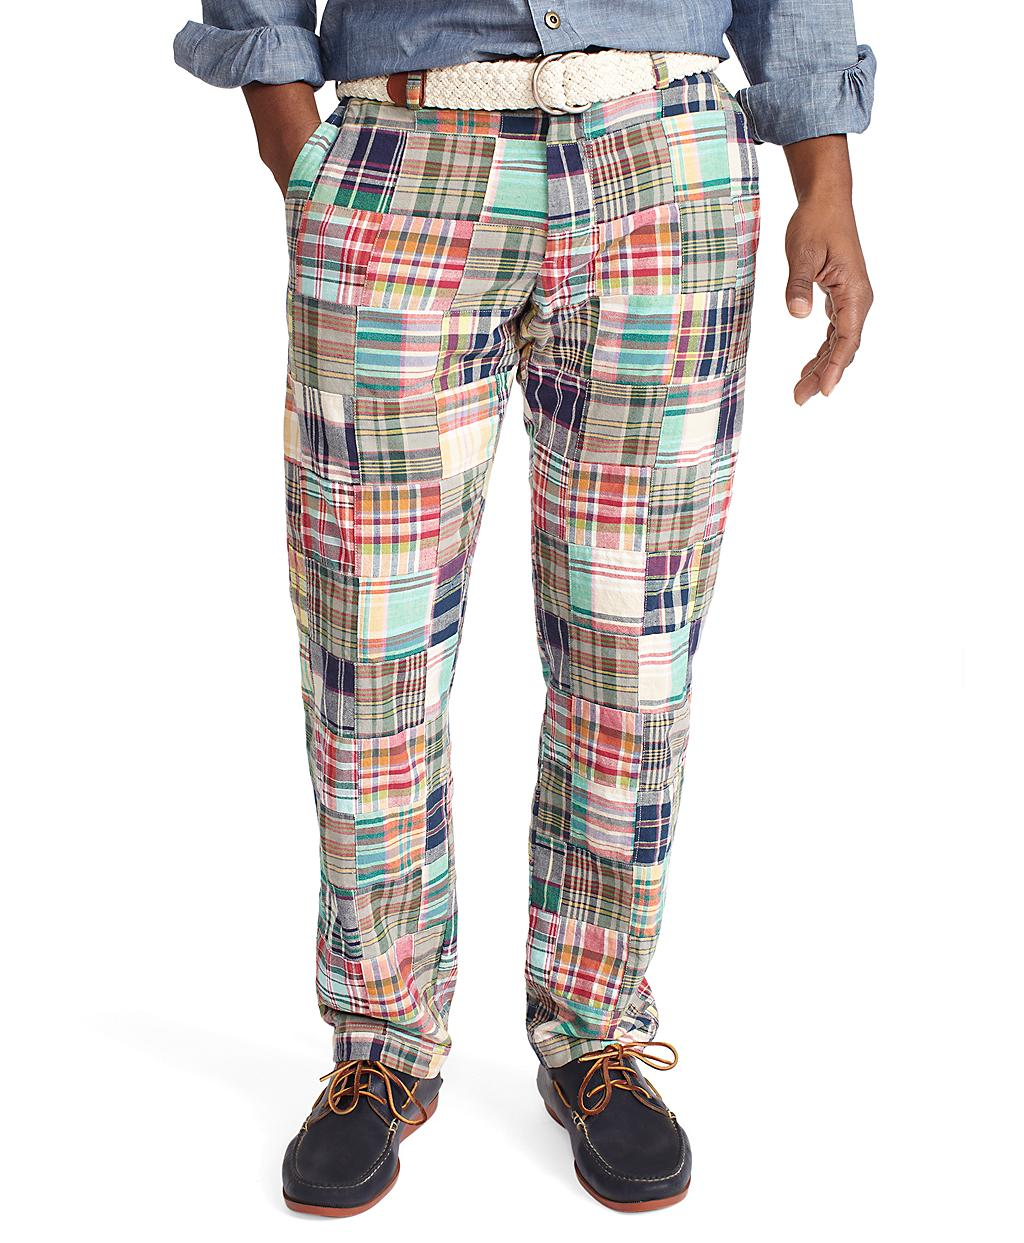 Madras, Seersucker, Gingham. Cart 0. Sign In My Account. Mens Womens Home Decor Sale Made to Order Contact Us. Back Shop All Mens Blazers Shorts/Pants Bow Ties Ties Belts Cummerbund Sets Pocket Squares Back Shop All Womens Accessories Just Madras. help@shopnow-vjpmehag.cf